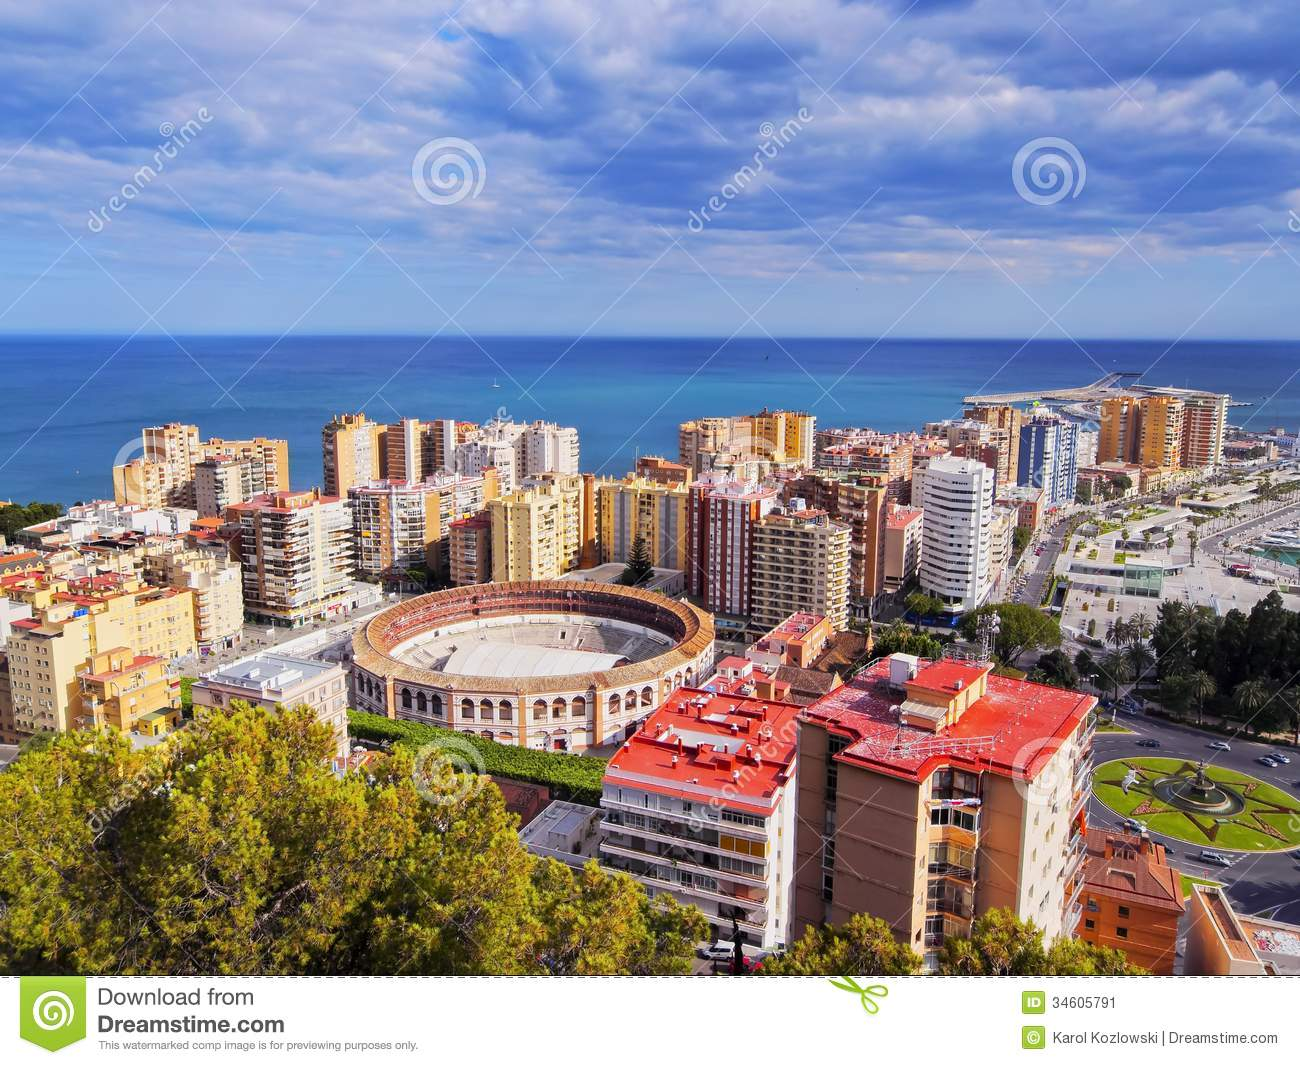 malaga cityscape spain stock image image of arena landmark 34605791. Black Bedroom Furniture Sets. Home Design Ideas